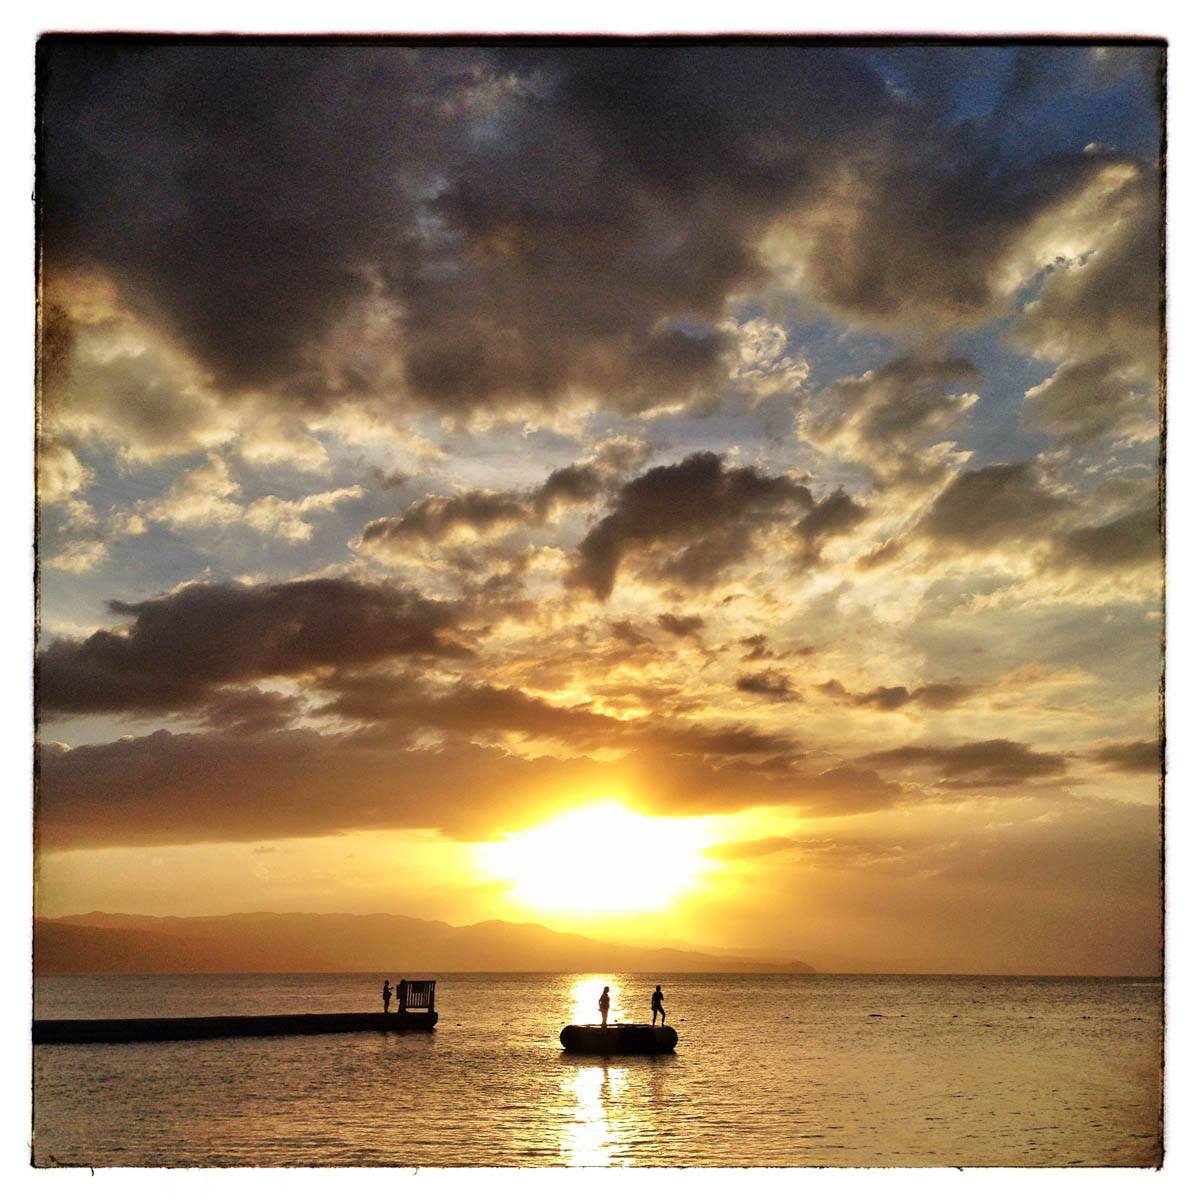 iphone-travel-jamaica-33